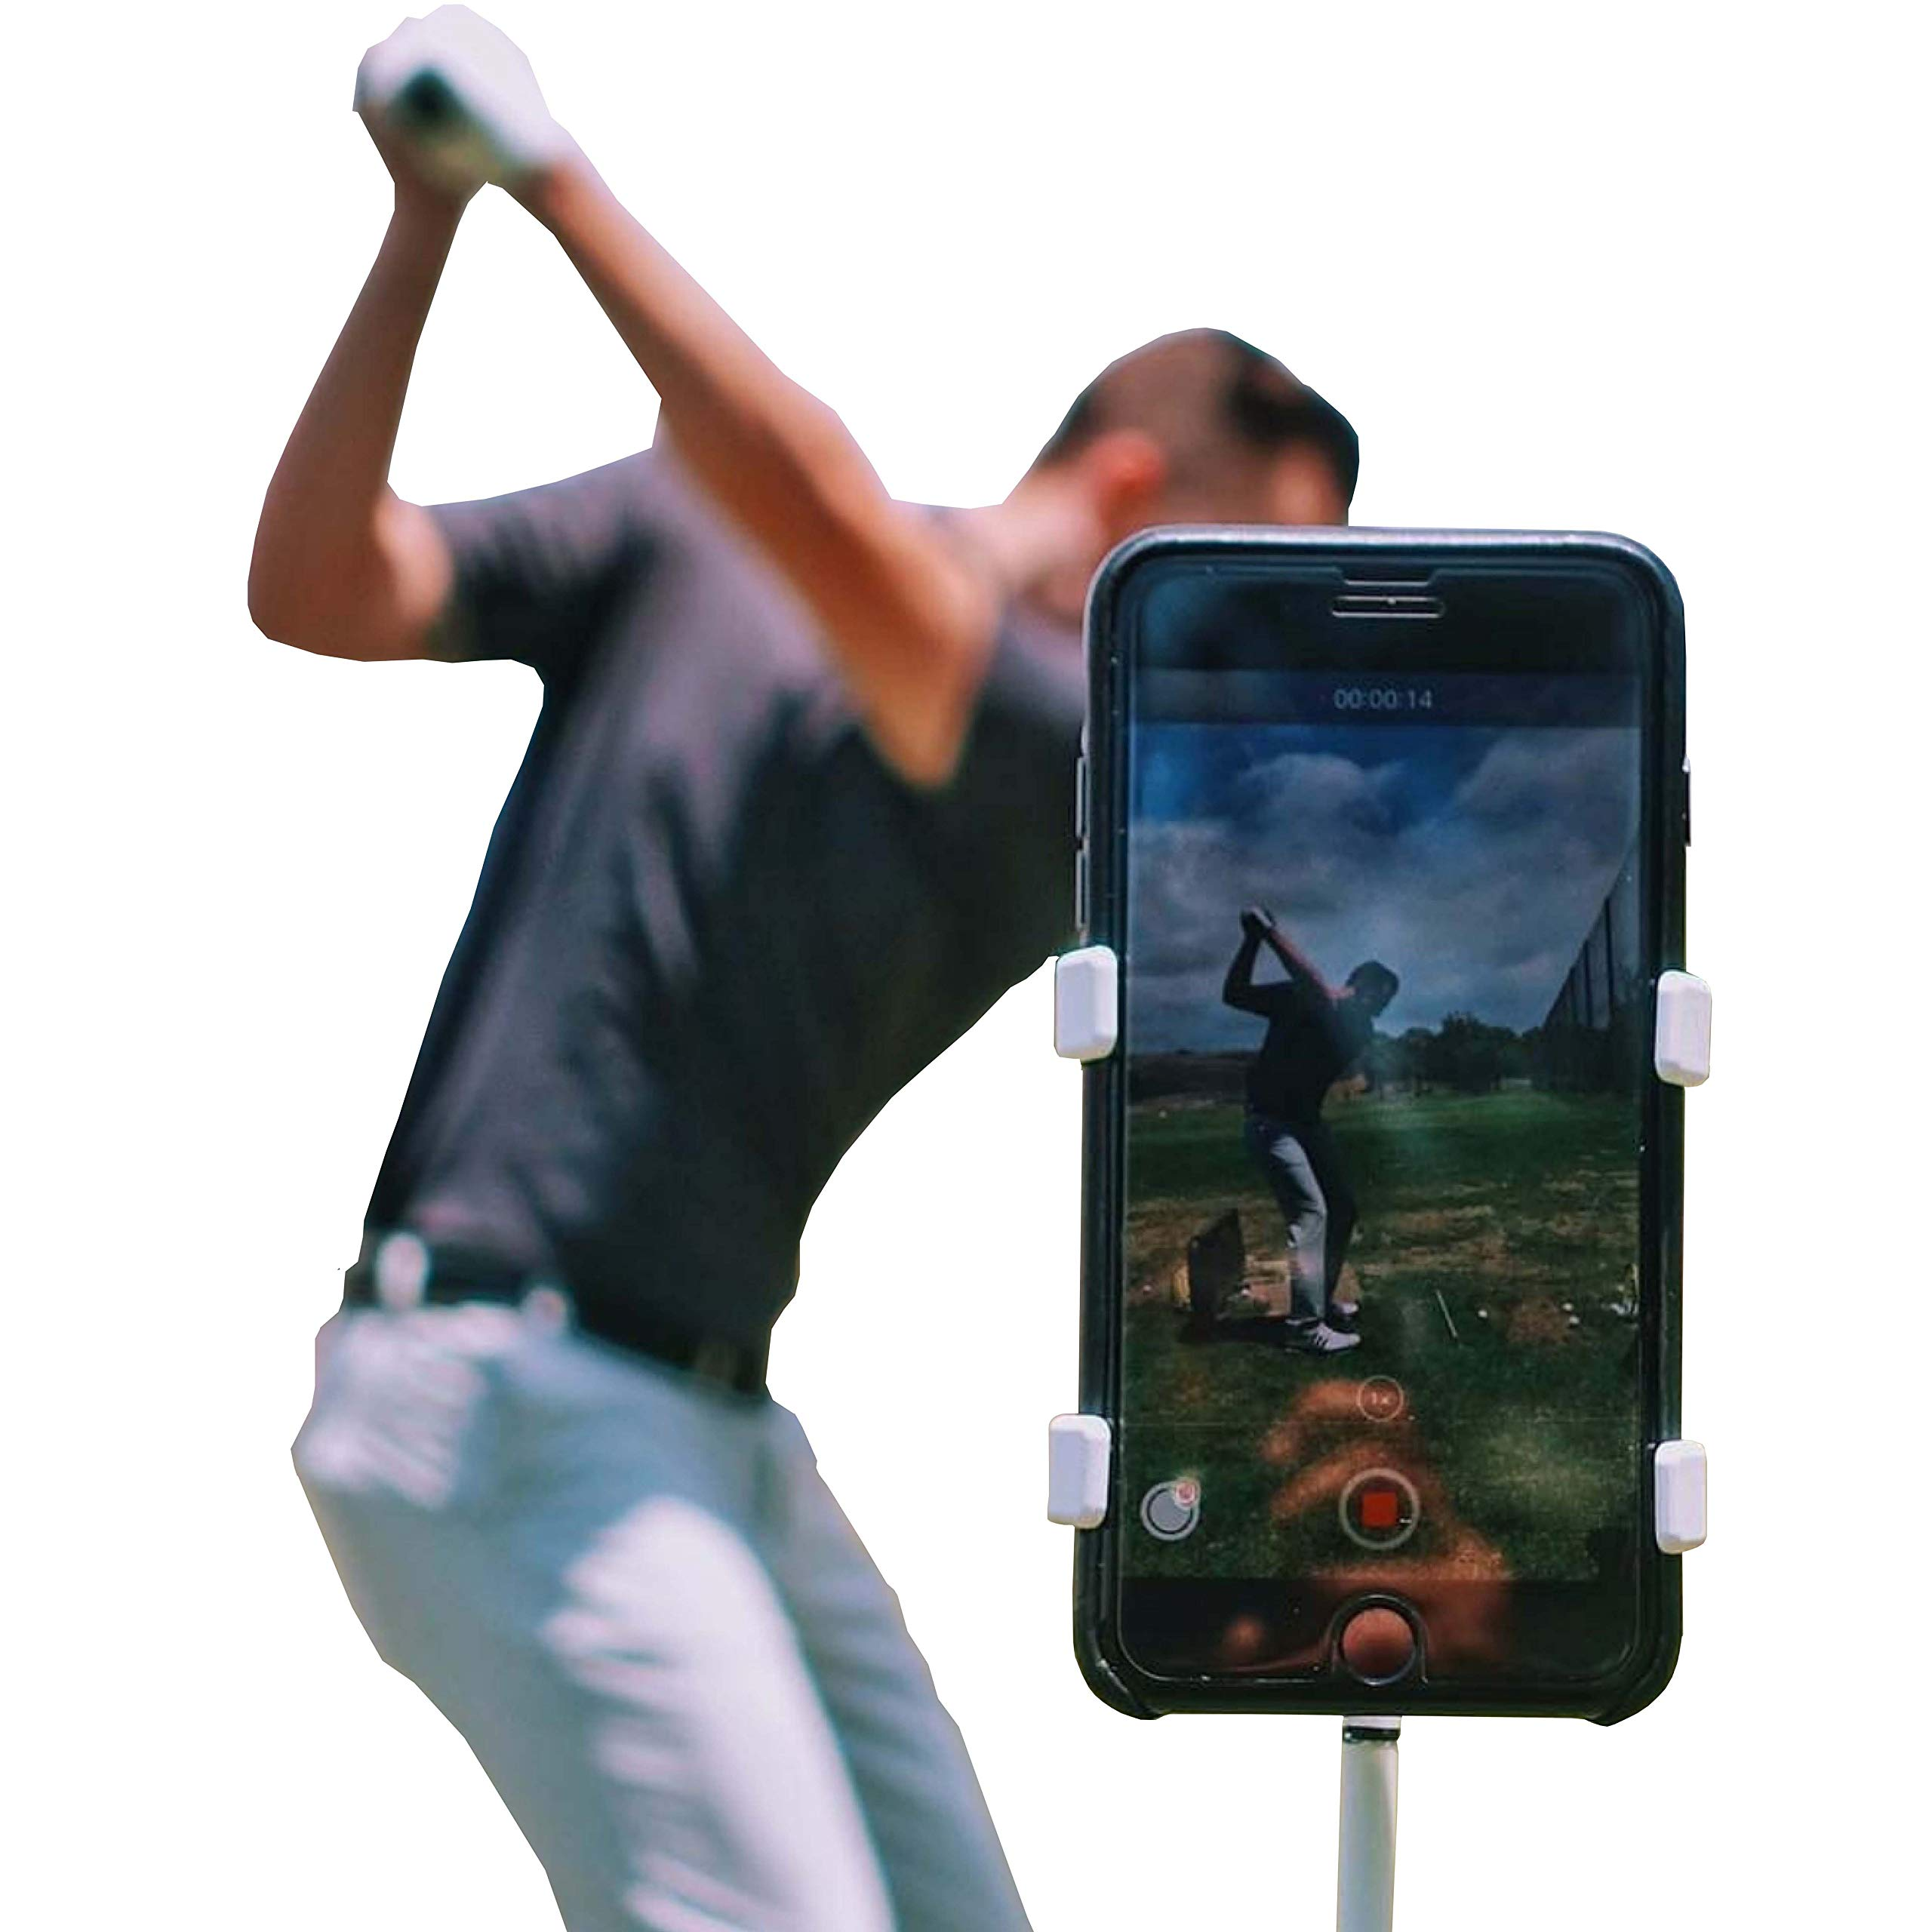 SelfieGolf Record Golf Swing - Cell Phone Clip Holder and Training Aid - Golf Accessories | Winner of The PGA Best Product | Works with Any Smart Phone, Quick Set Up (Blue/White) by Selfie Golf